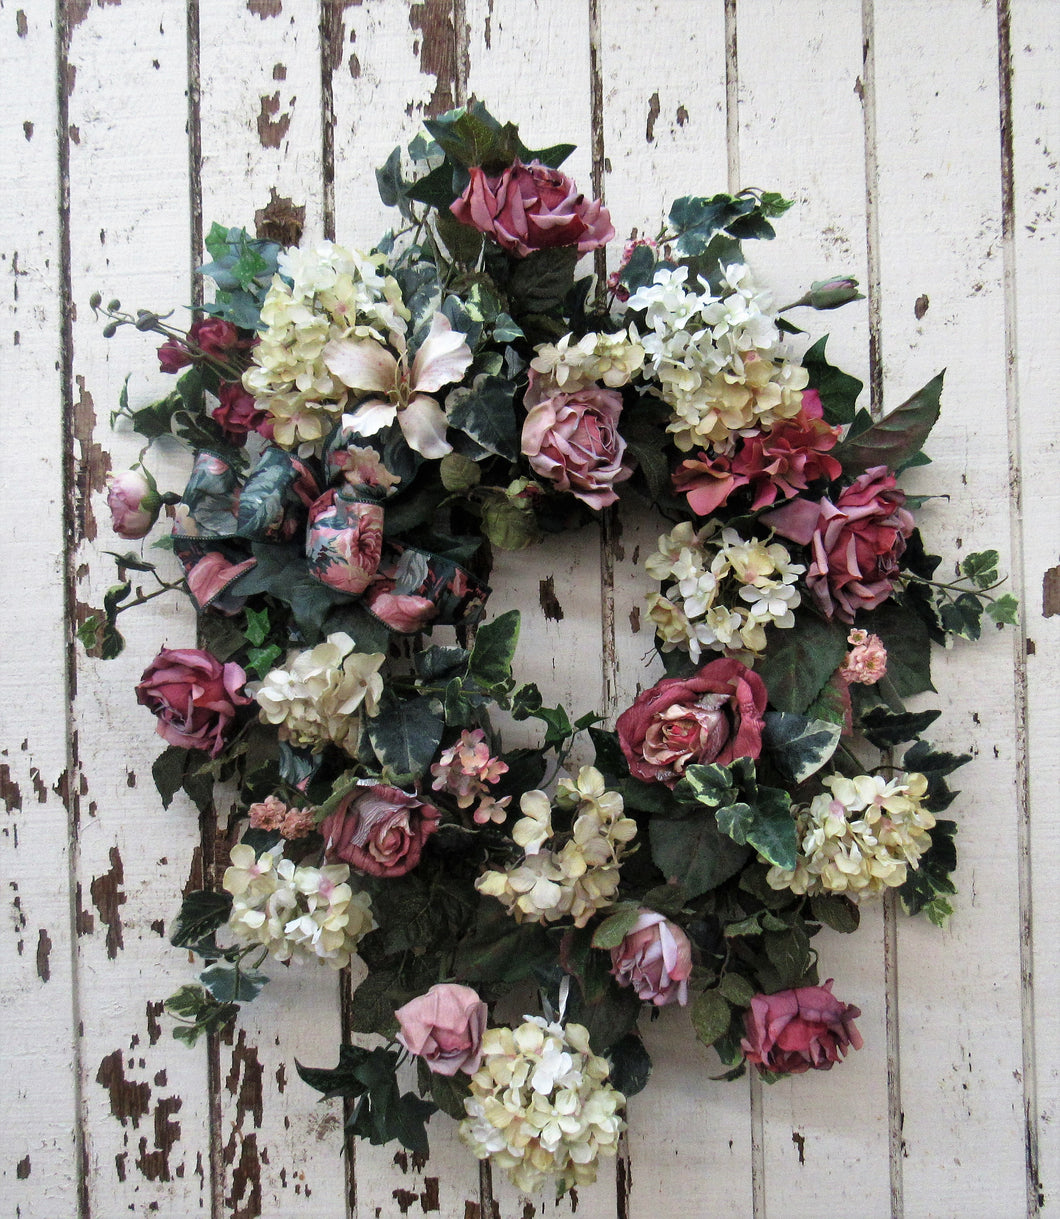 Gallery/Rom11 - April's Garden Wreath